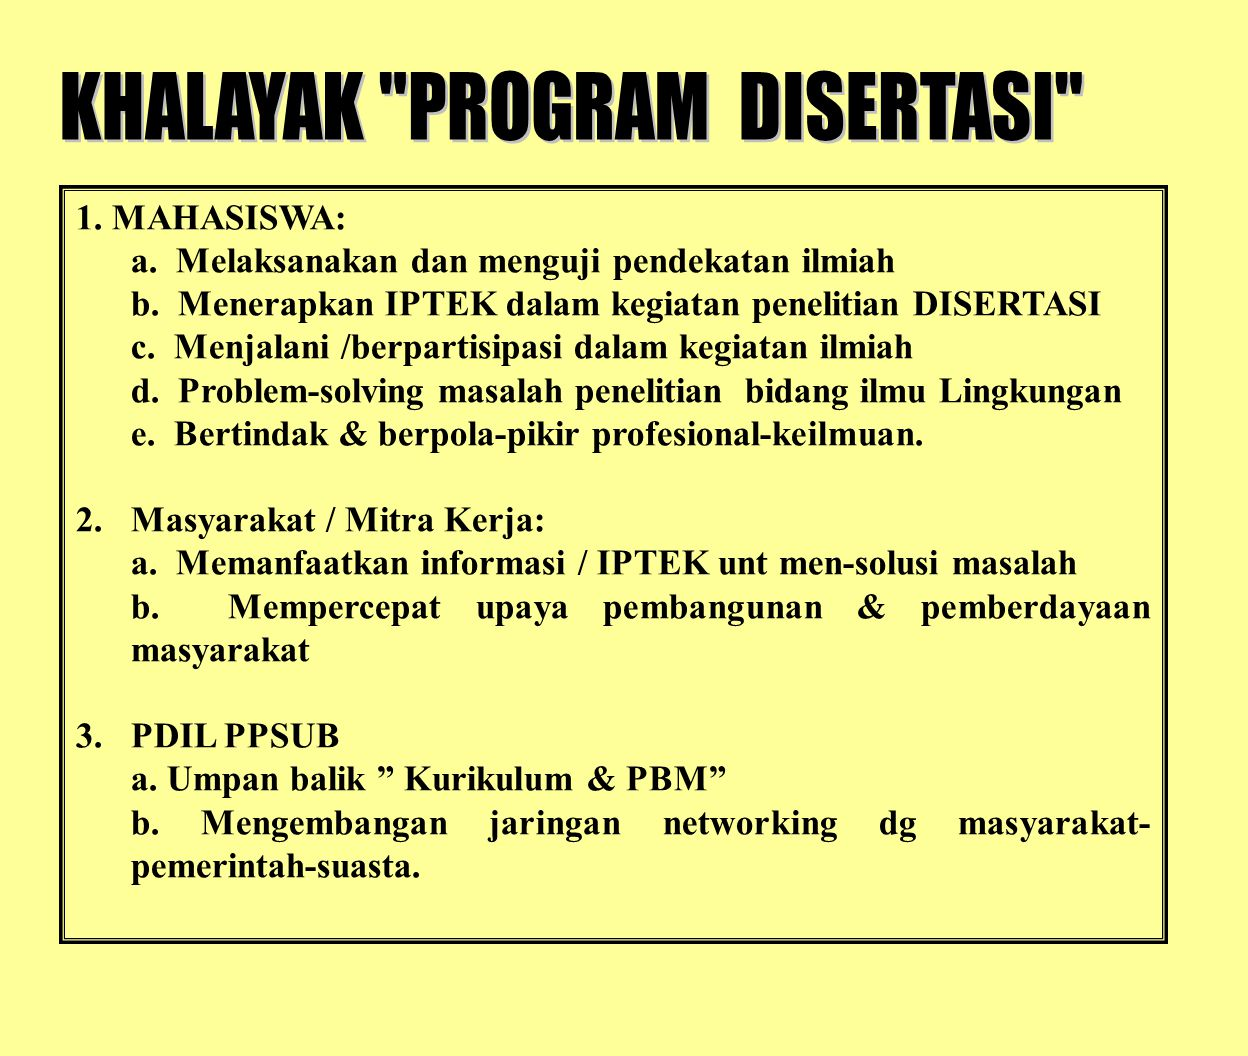 KHALAYAK PROGRAM DISERTASI